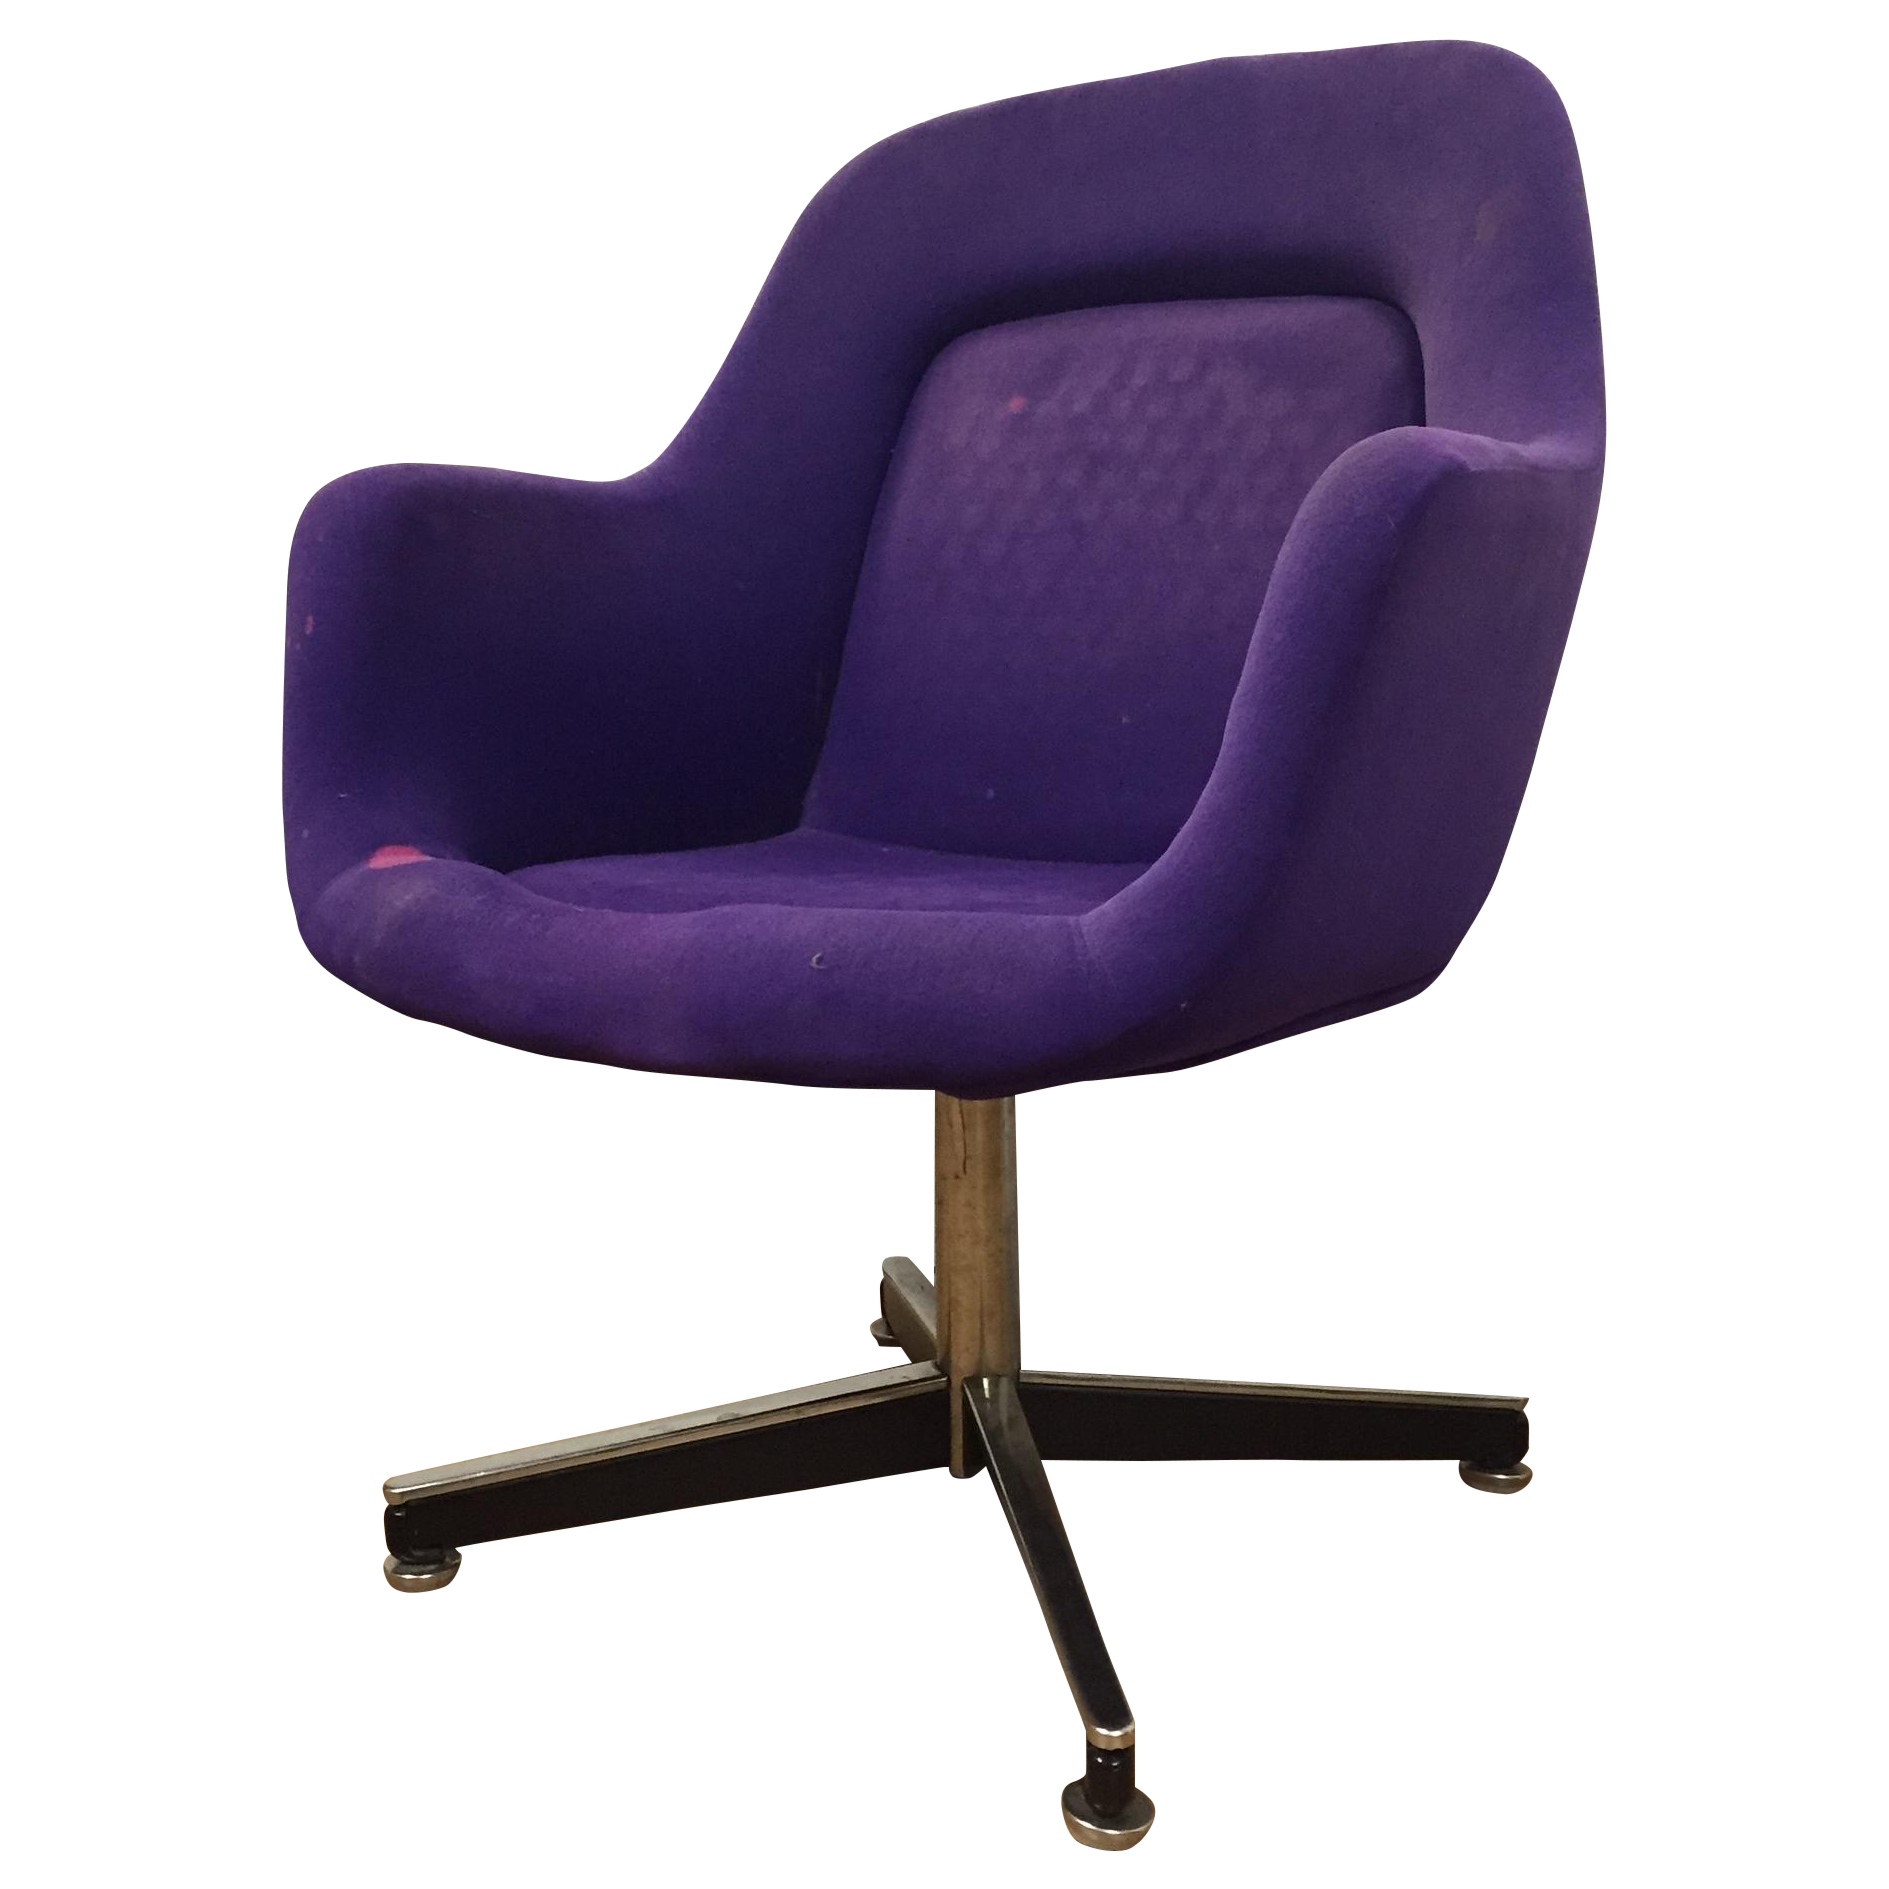 modern furniture chairs png purple knoll swivel chair chairish 491